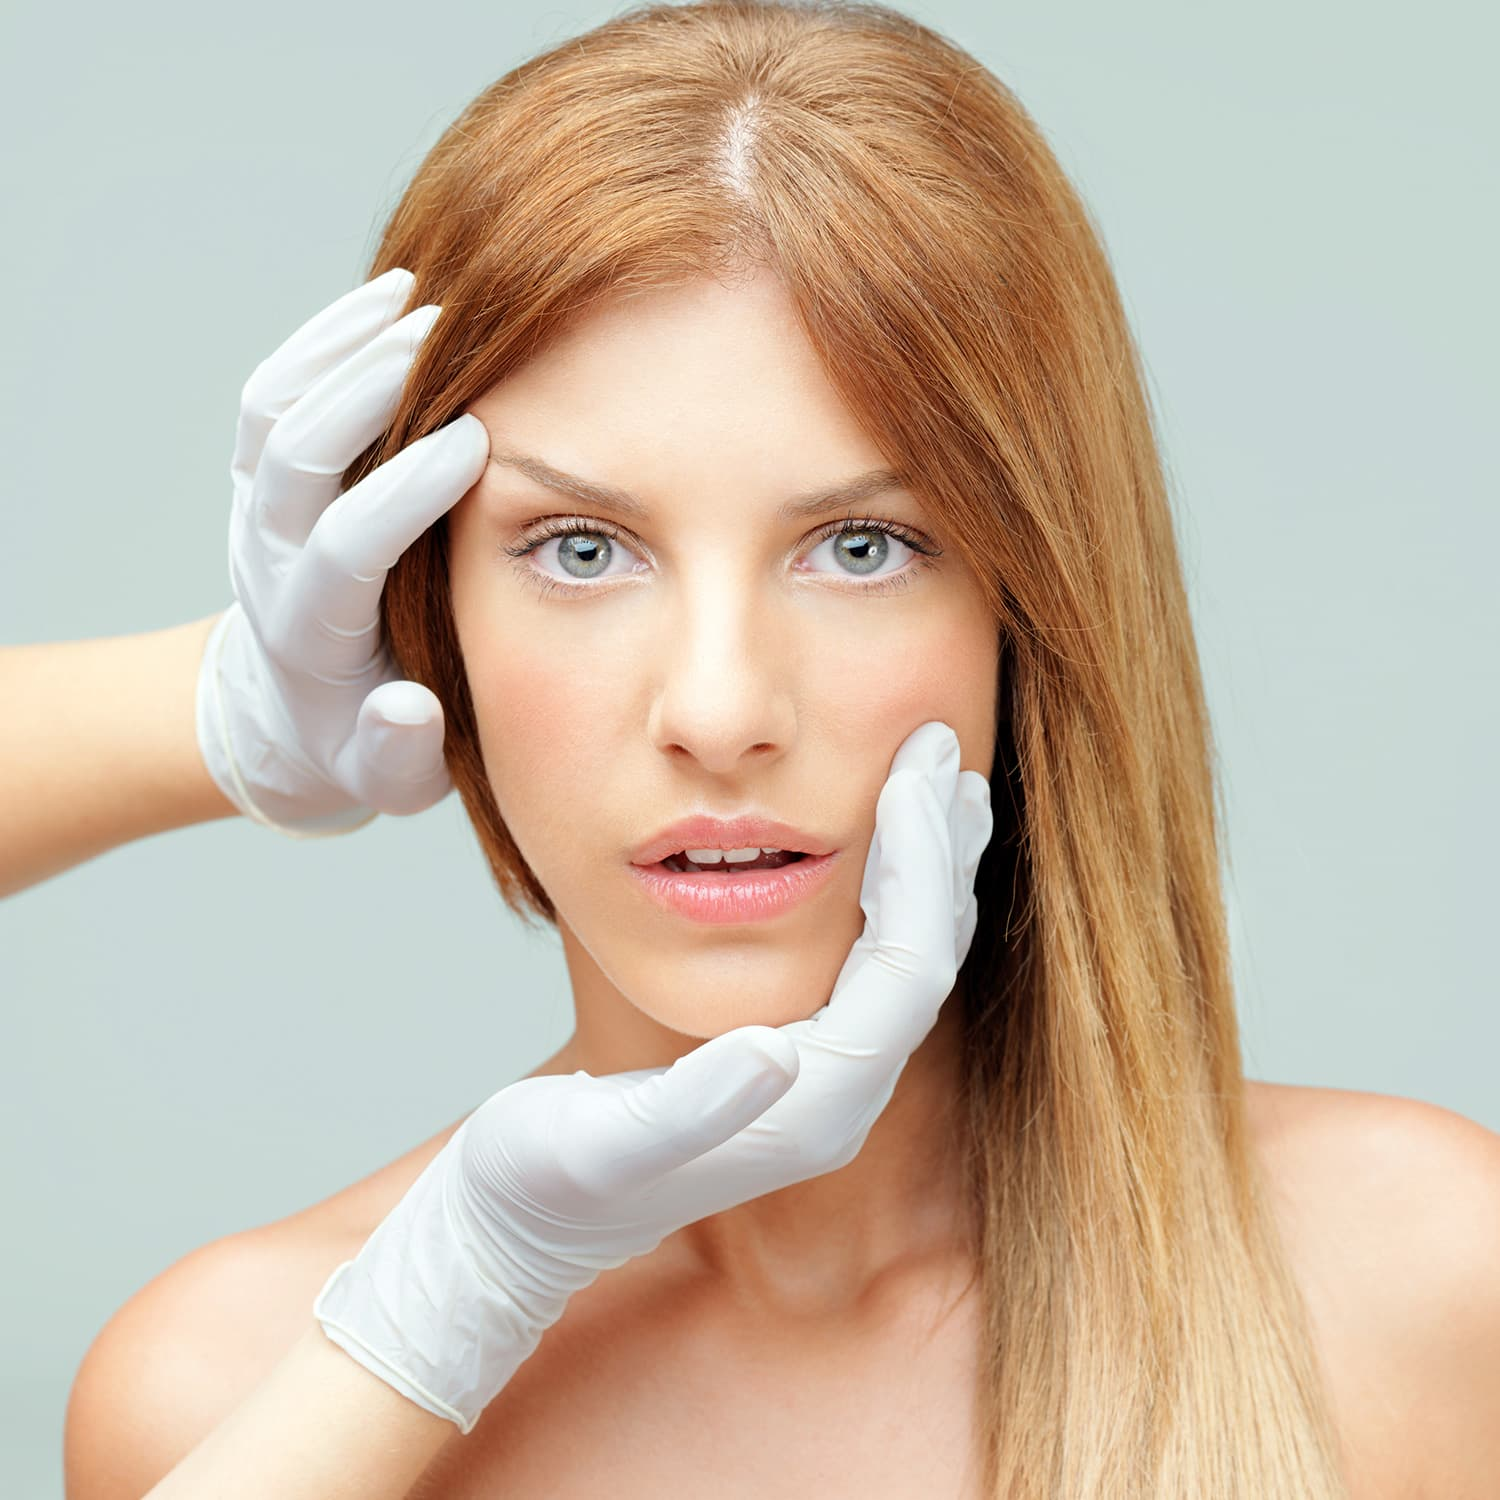 risks of cosmetic plastic surgery photo - 1